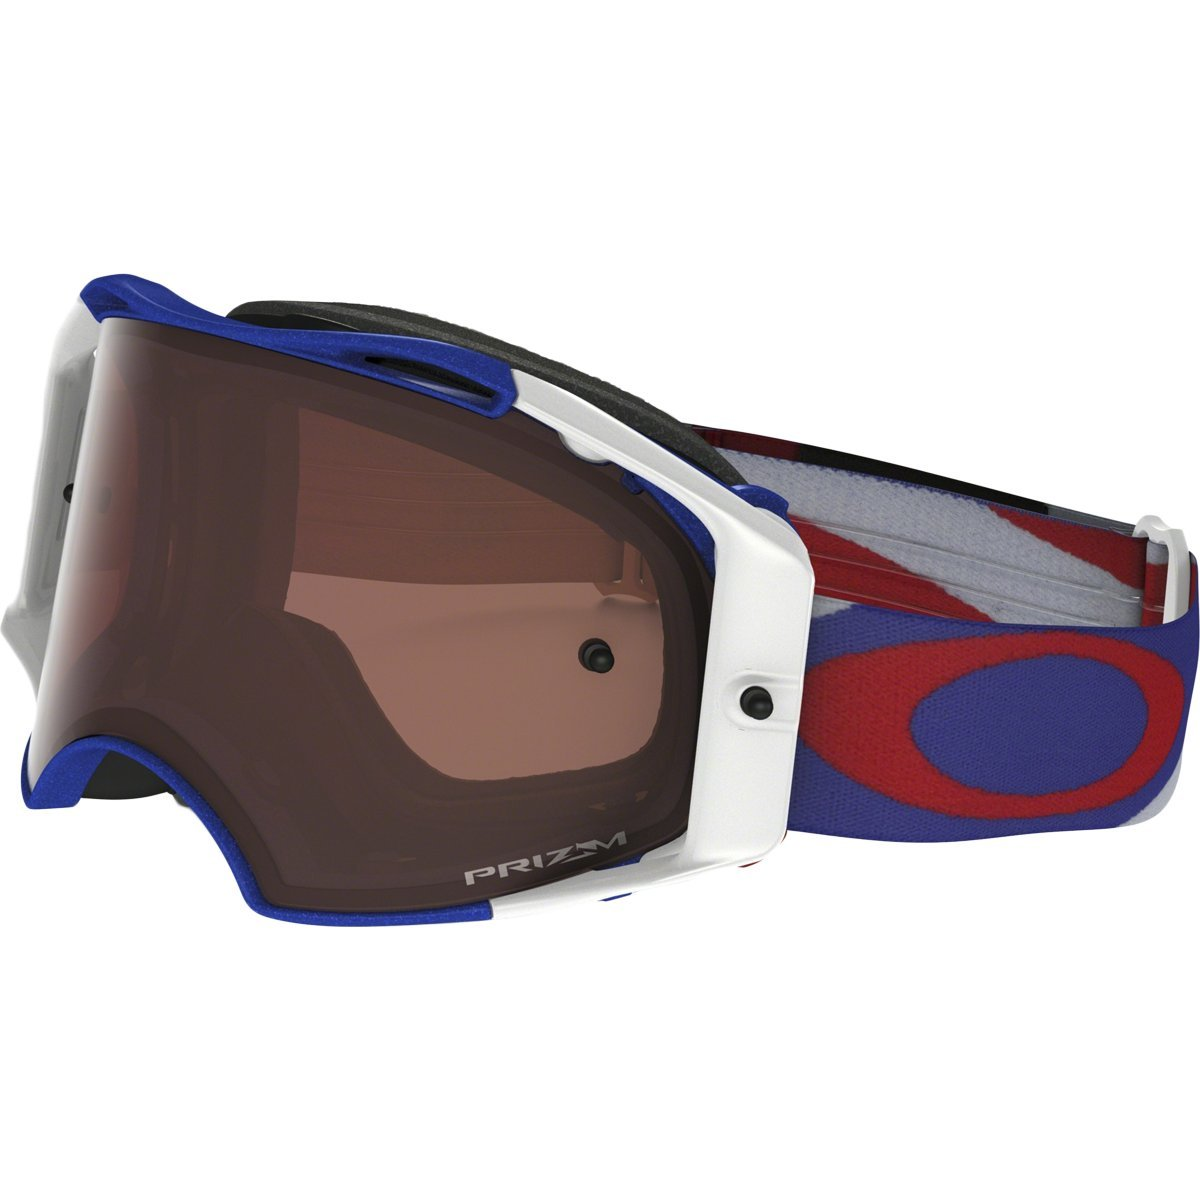 Oakley Airbrake MX Heritage Racer Adult Off-Road Motorcycle Goggles Eyewear - RWB/Prizm MX Bronze/One Size Fits All